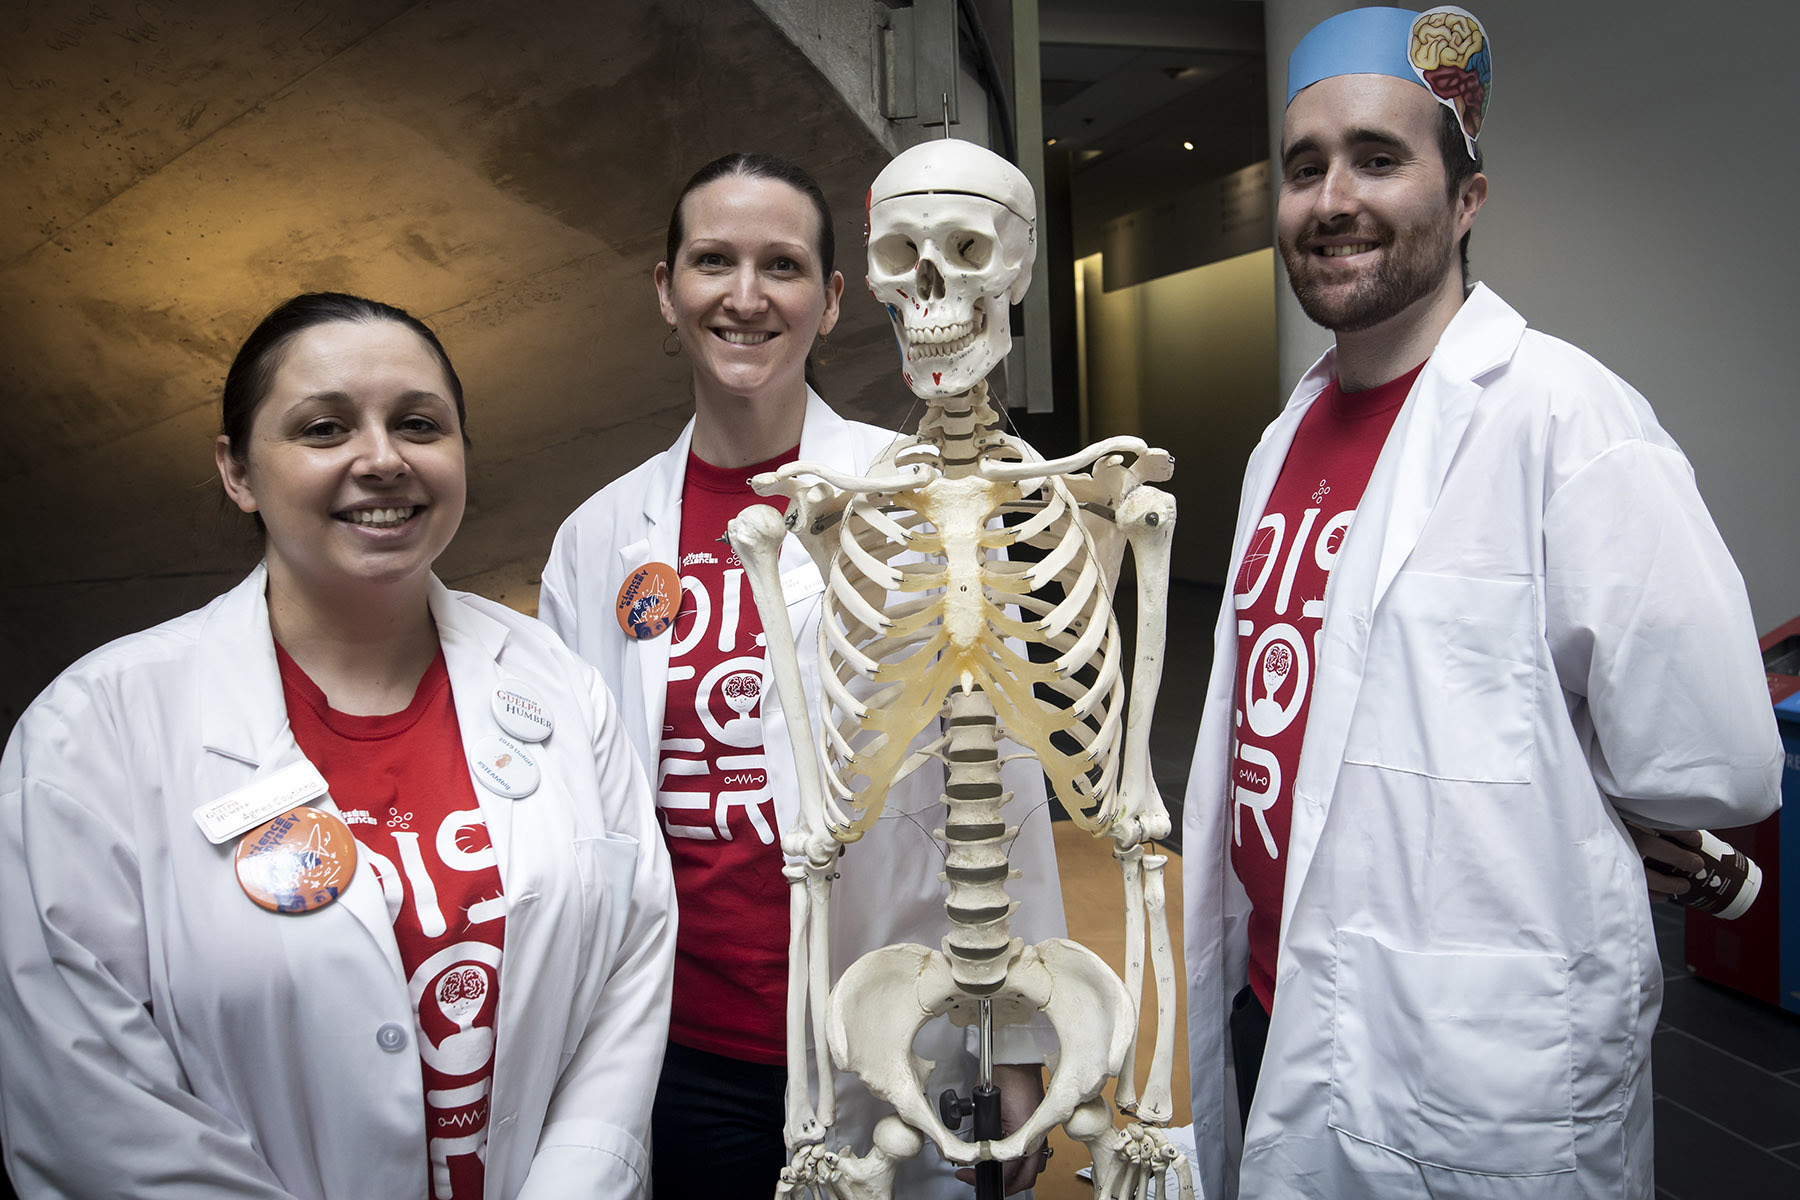 exhibitor posing picture with skeleton